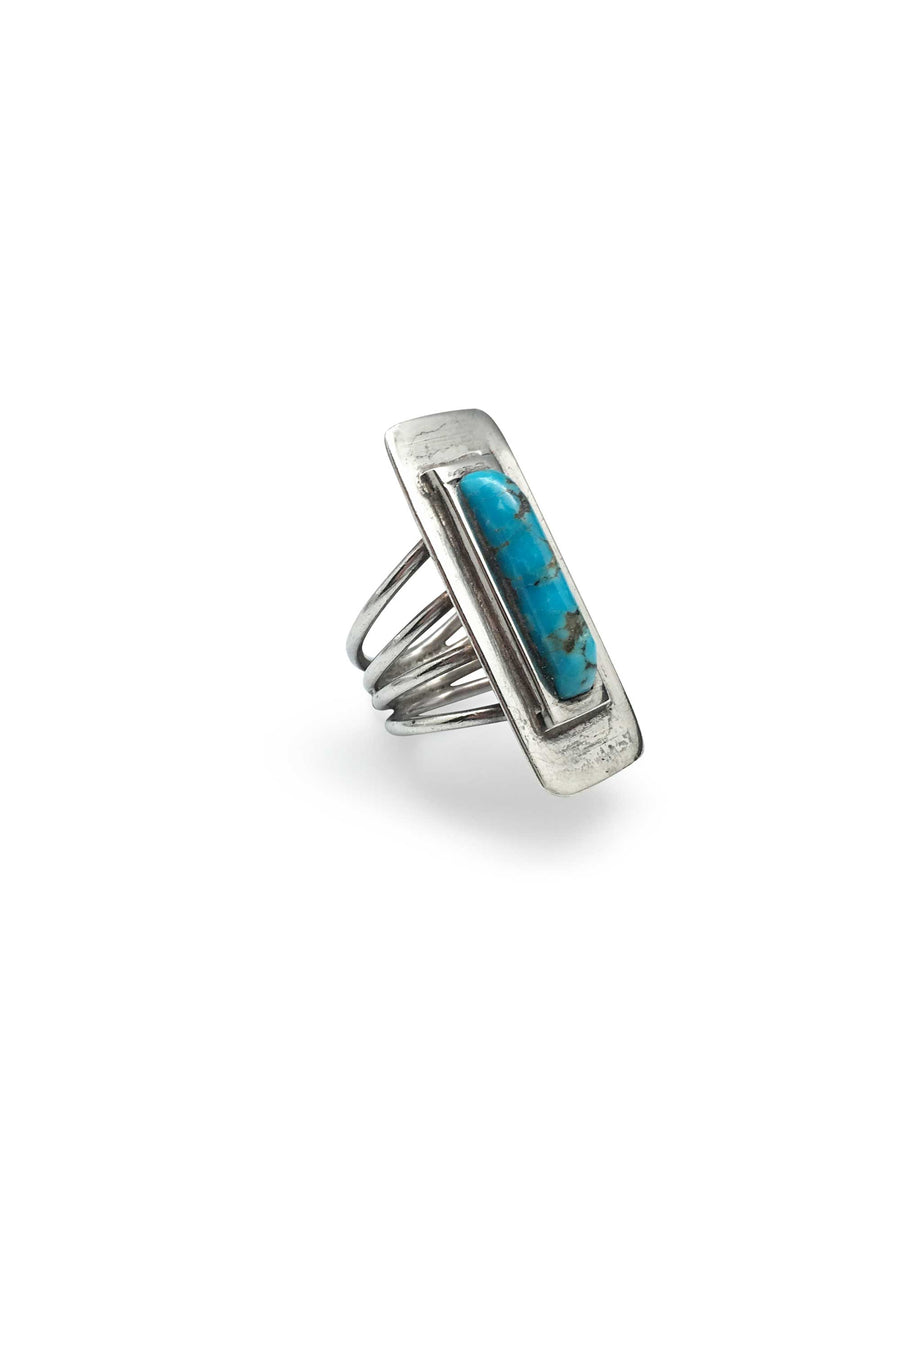 Ring, Turquoise, Vintage, 377